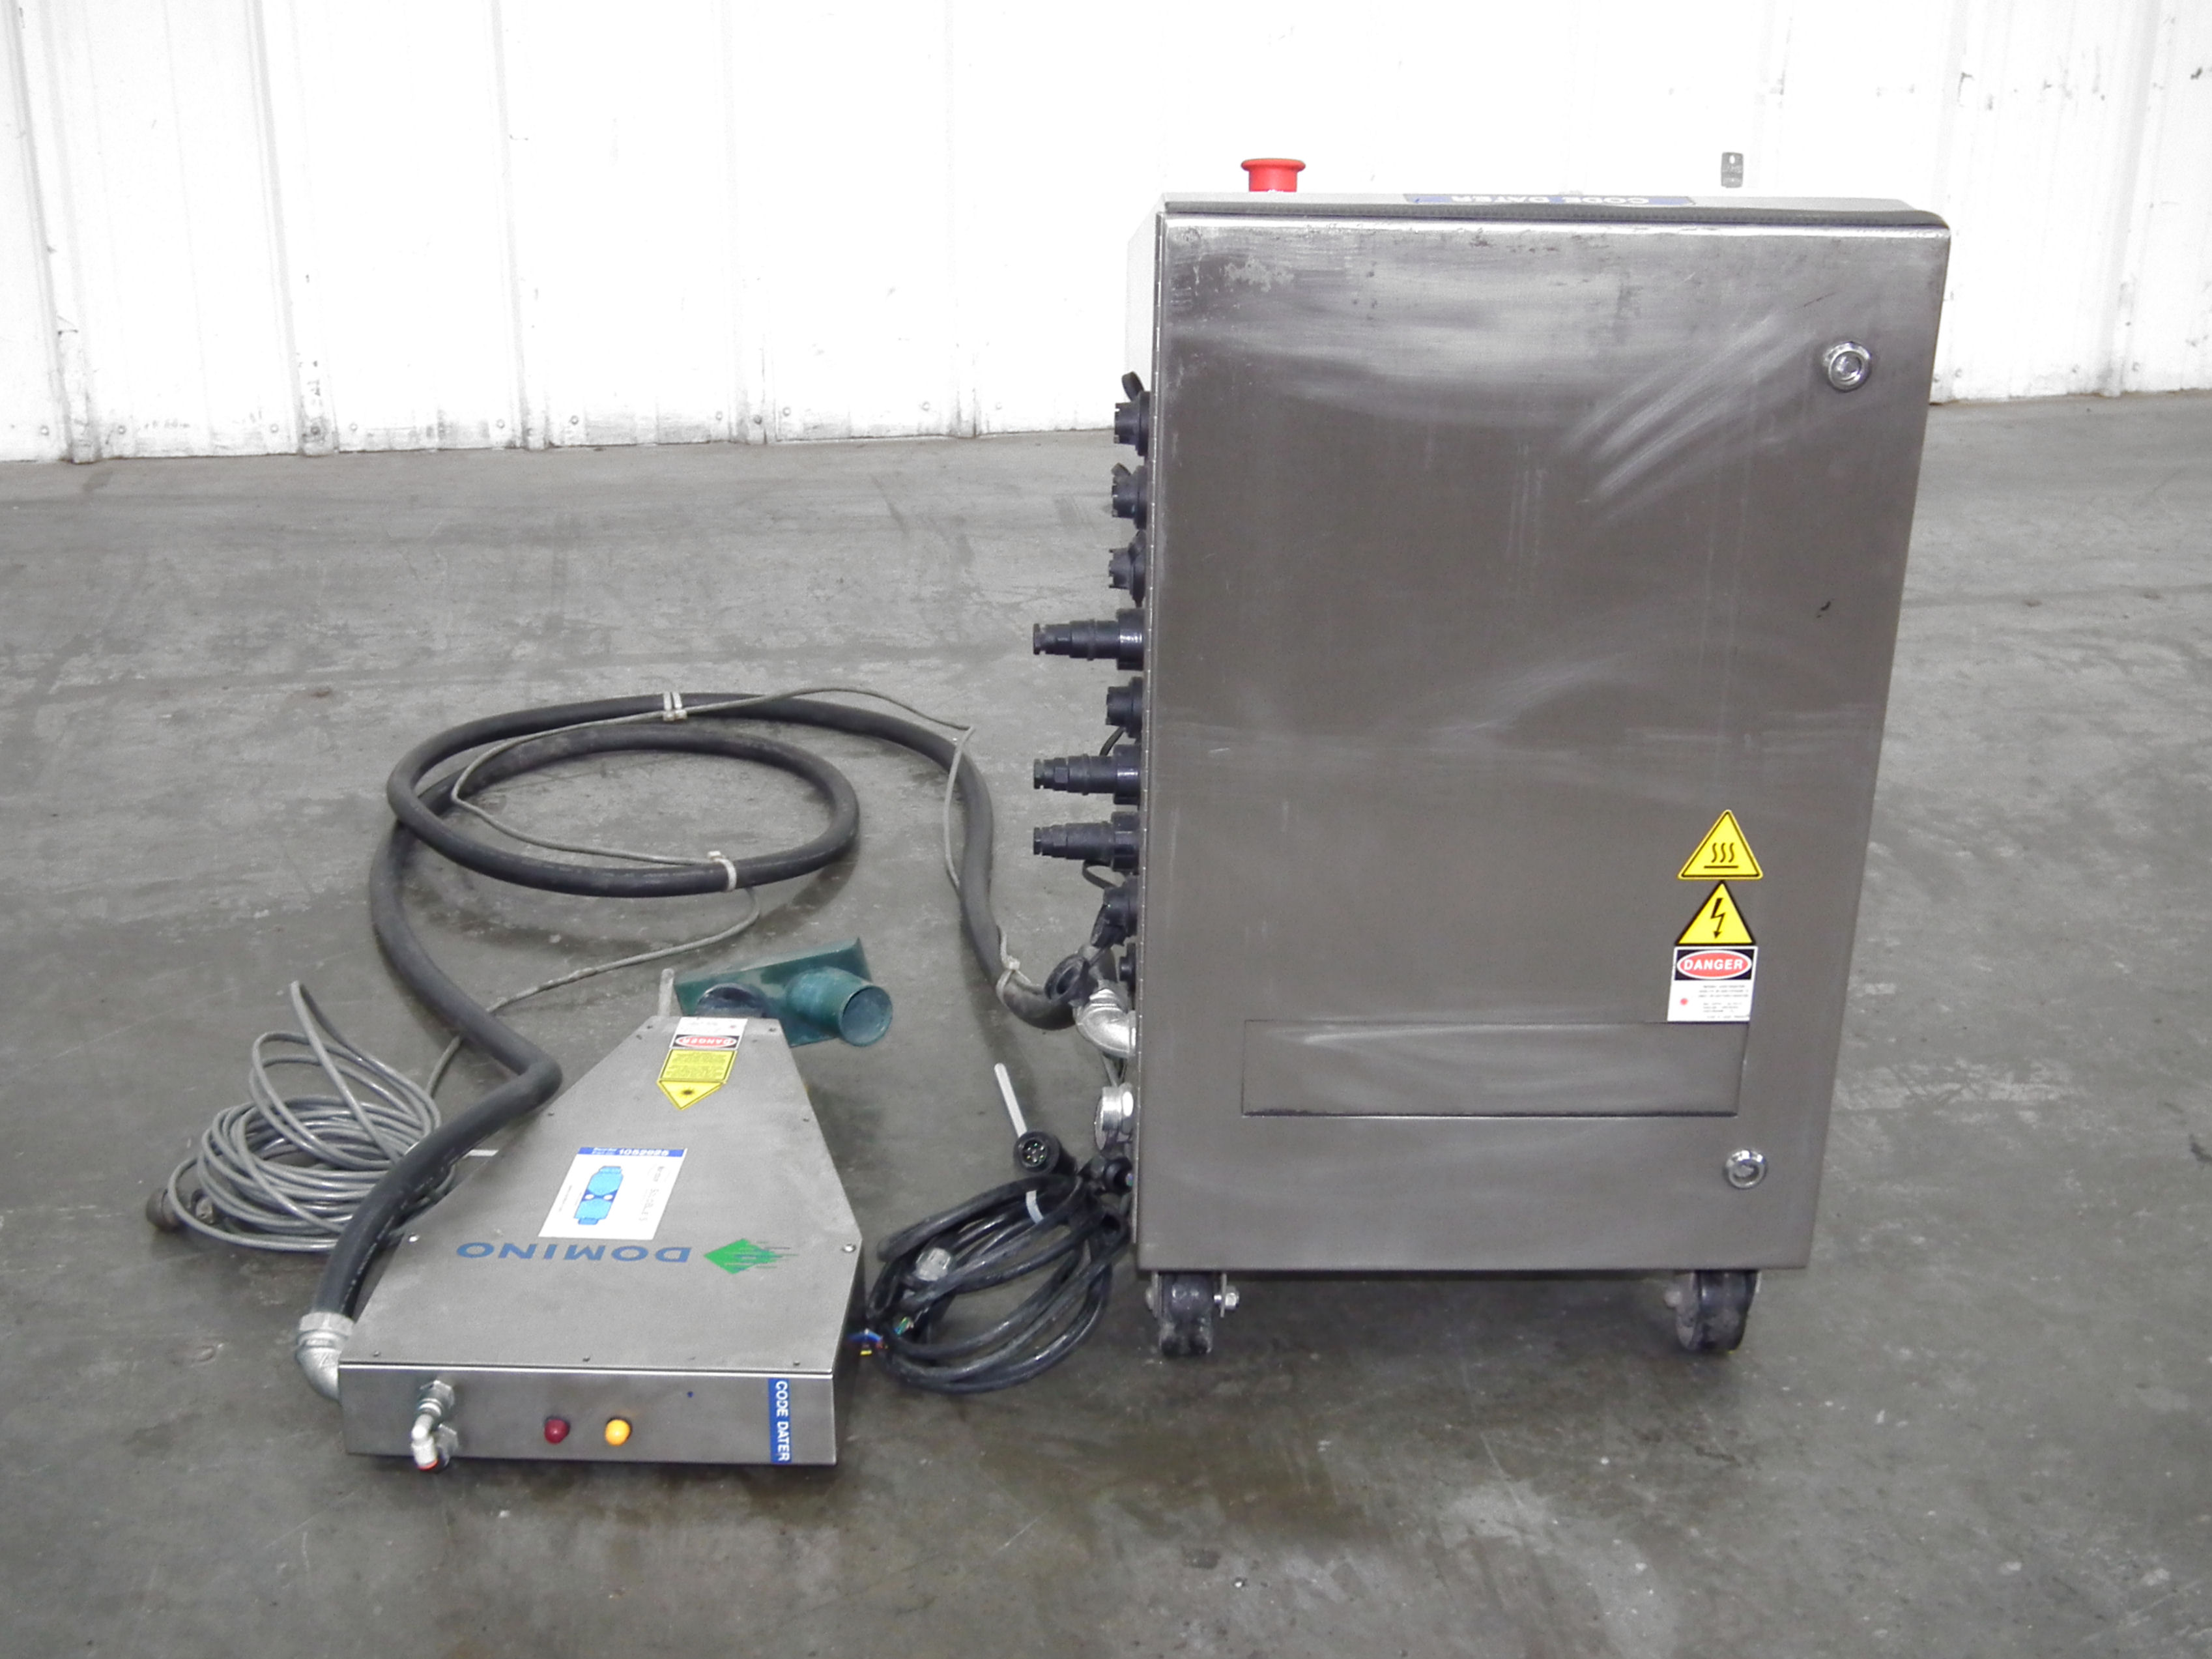 Domino DDC3 Laser Code Dater B4639 - Image 3 of 10